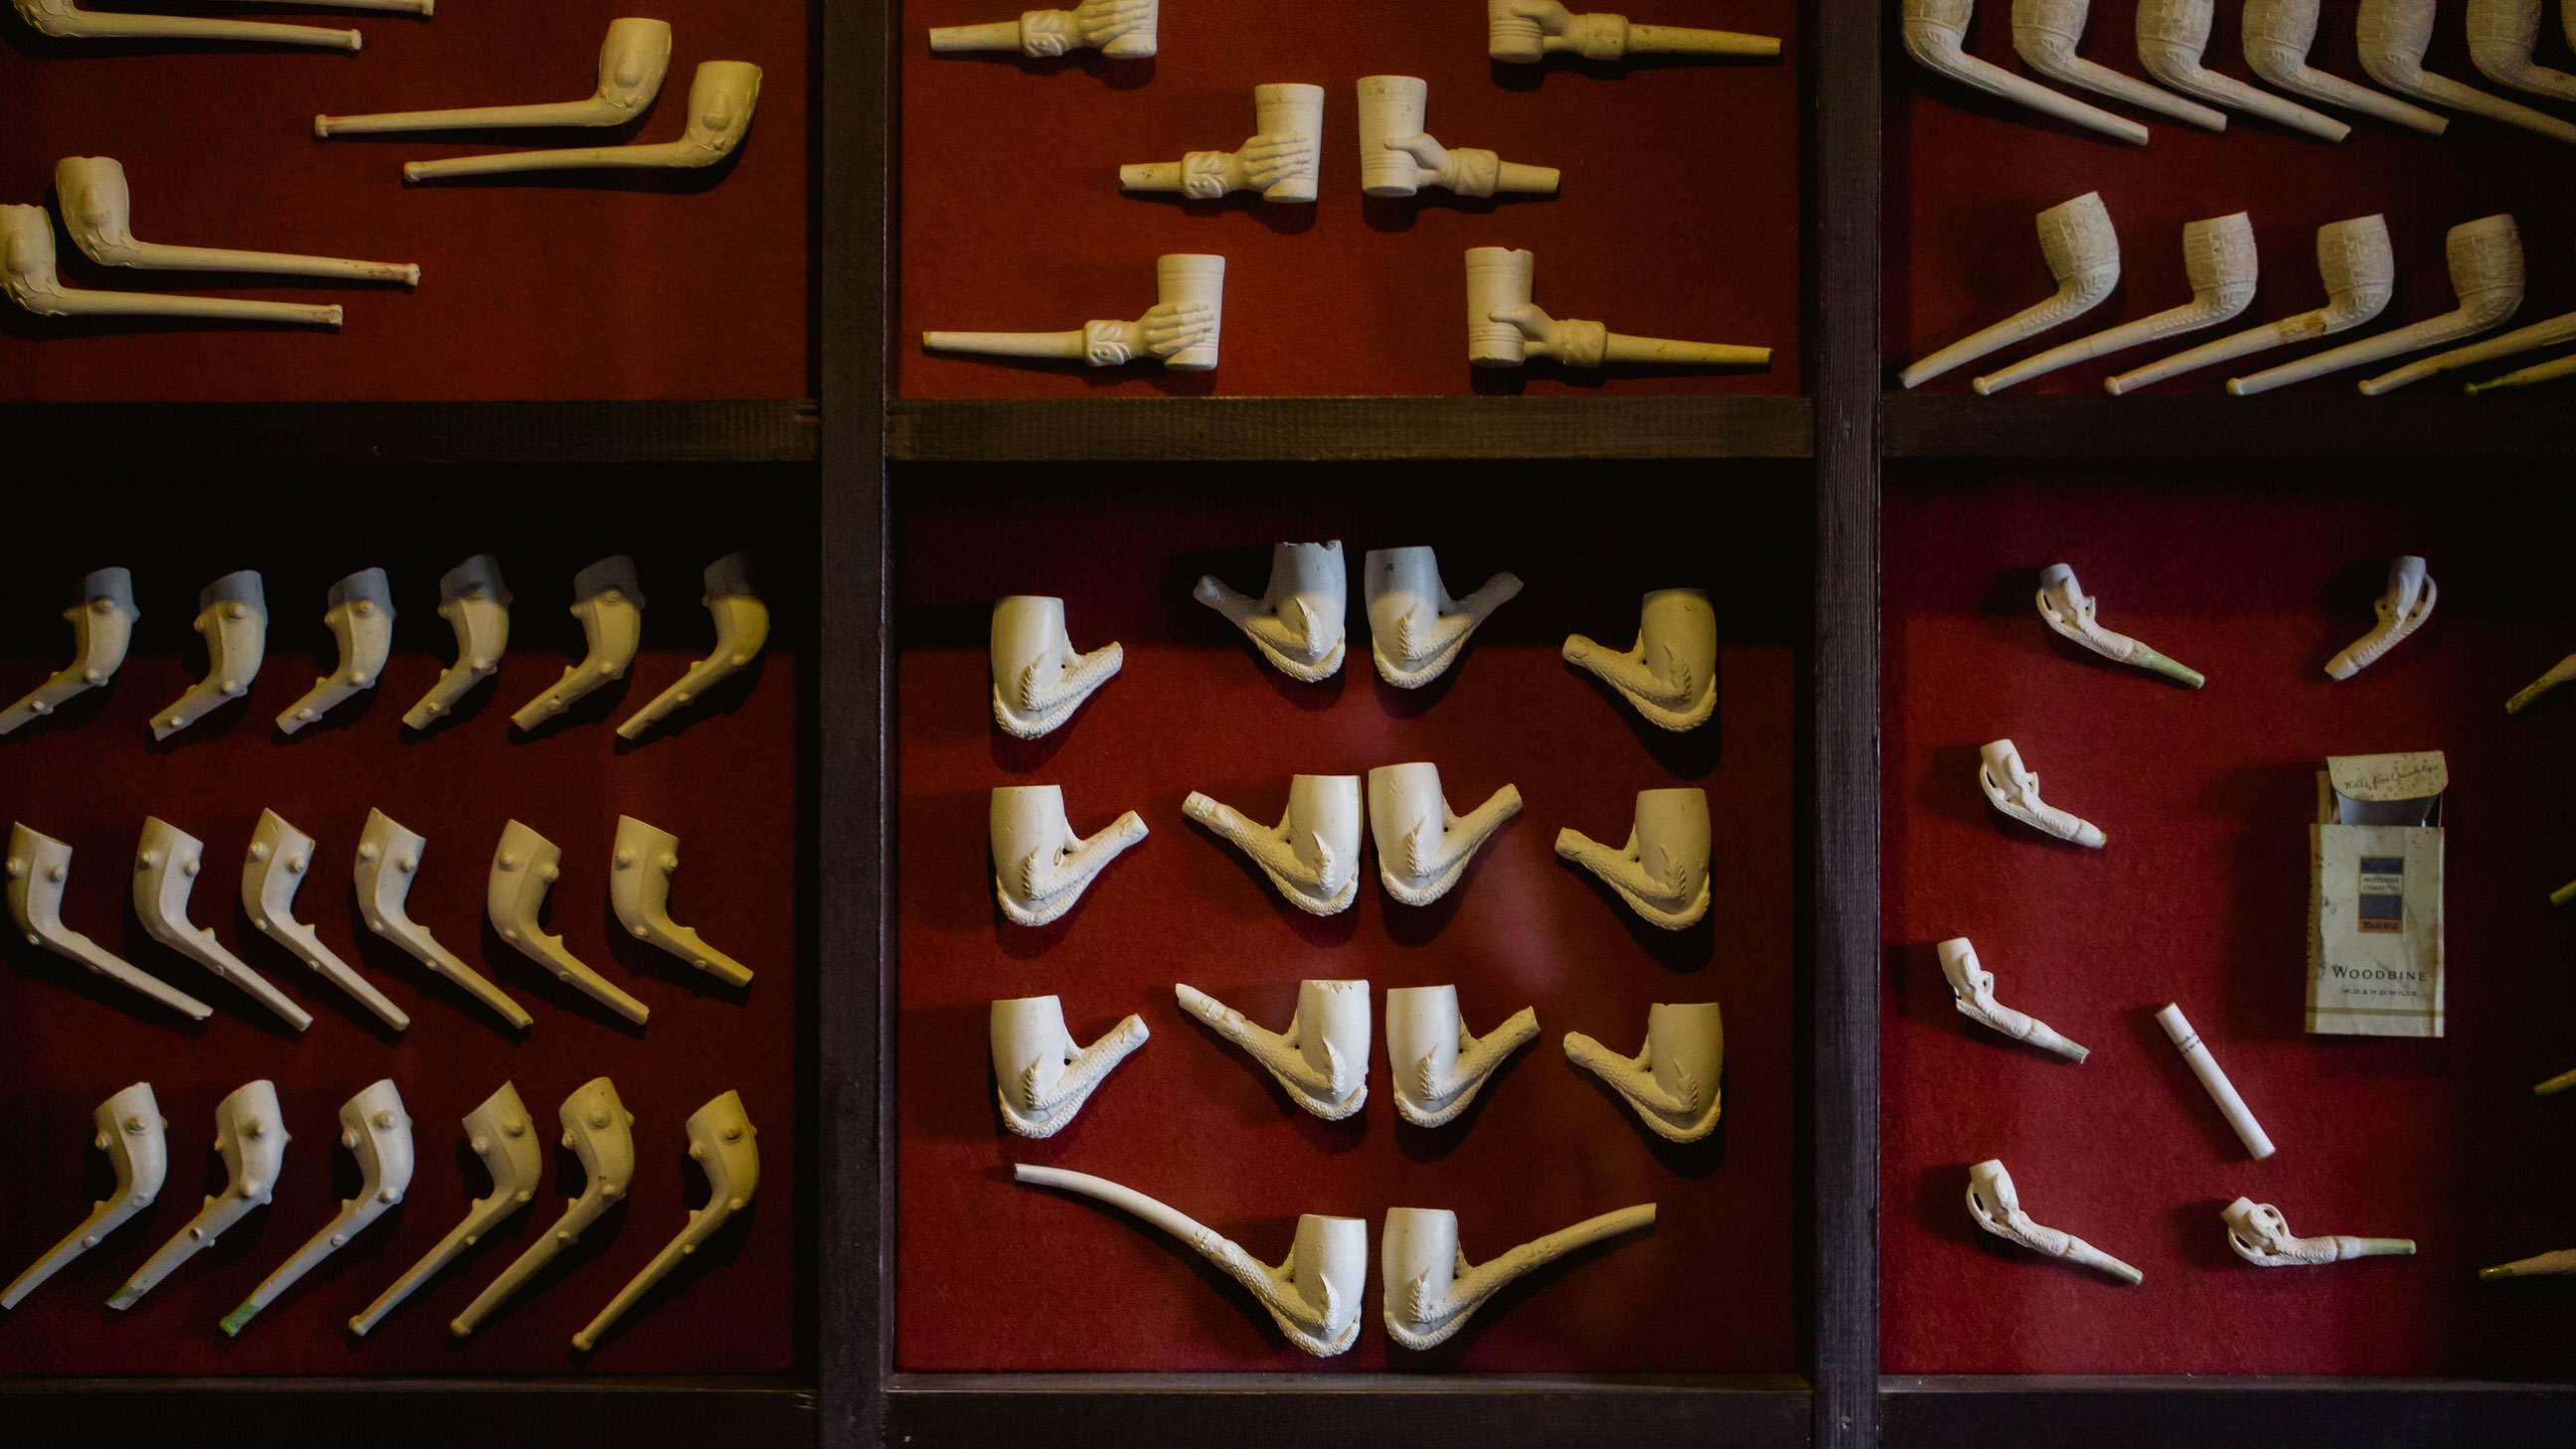 Clay Tobacco Pipe Displays